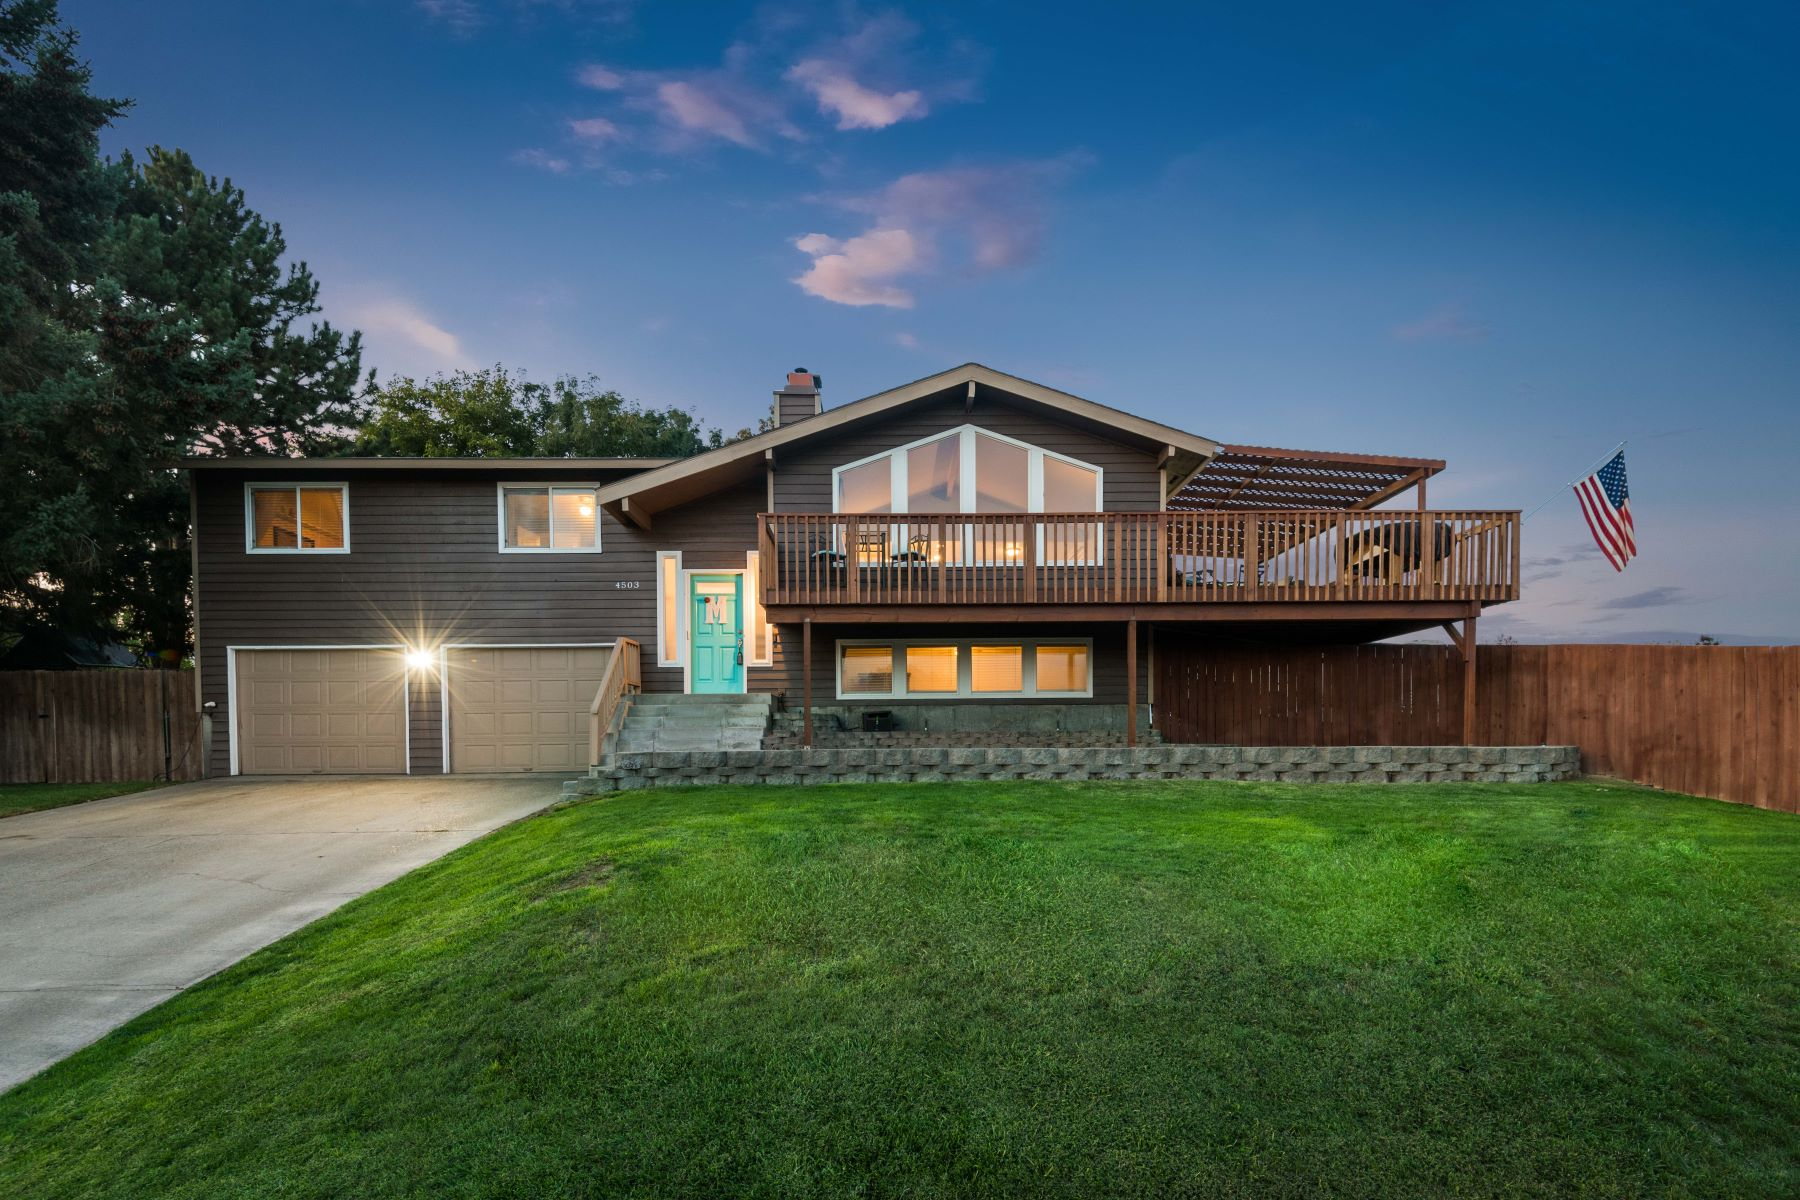 Single Family Homes for Sale at Large lot, updated, and an amazing view! 4503 Desert Drive Pasco, Washington 99301 United States